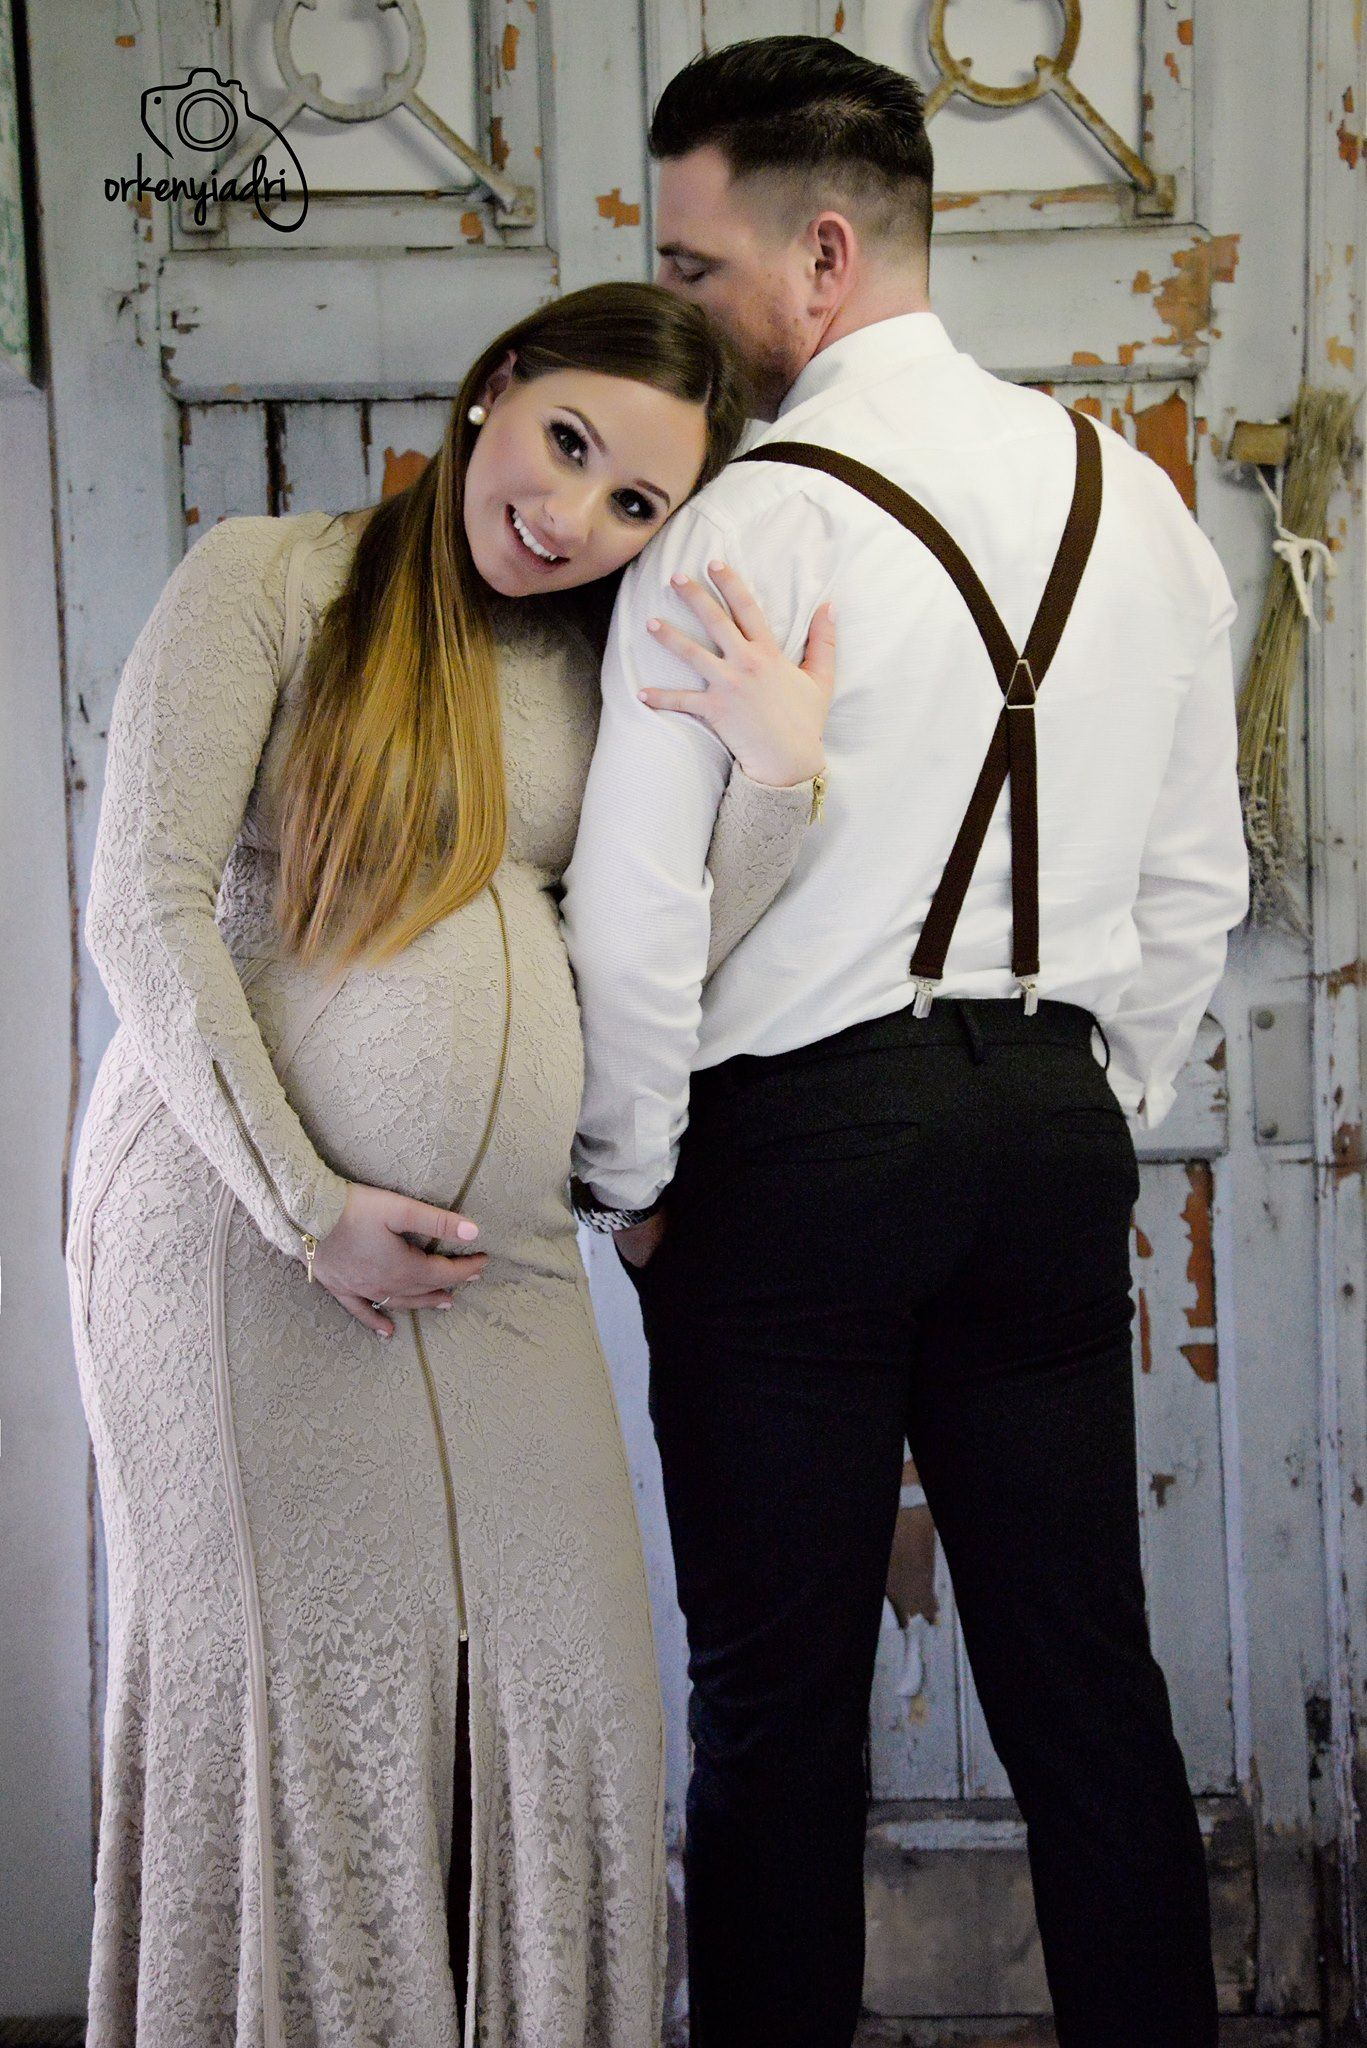 couple photography maternity pregnancy elegance french style stylist costume studio mother father wife husband marriage